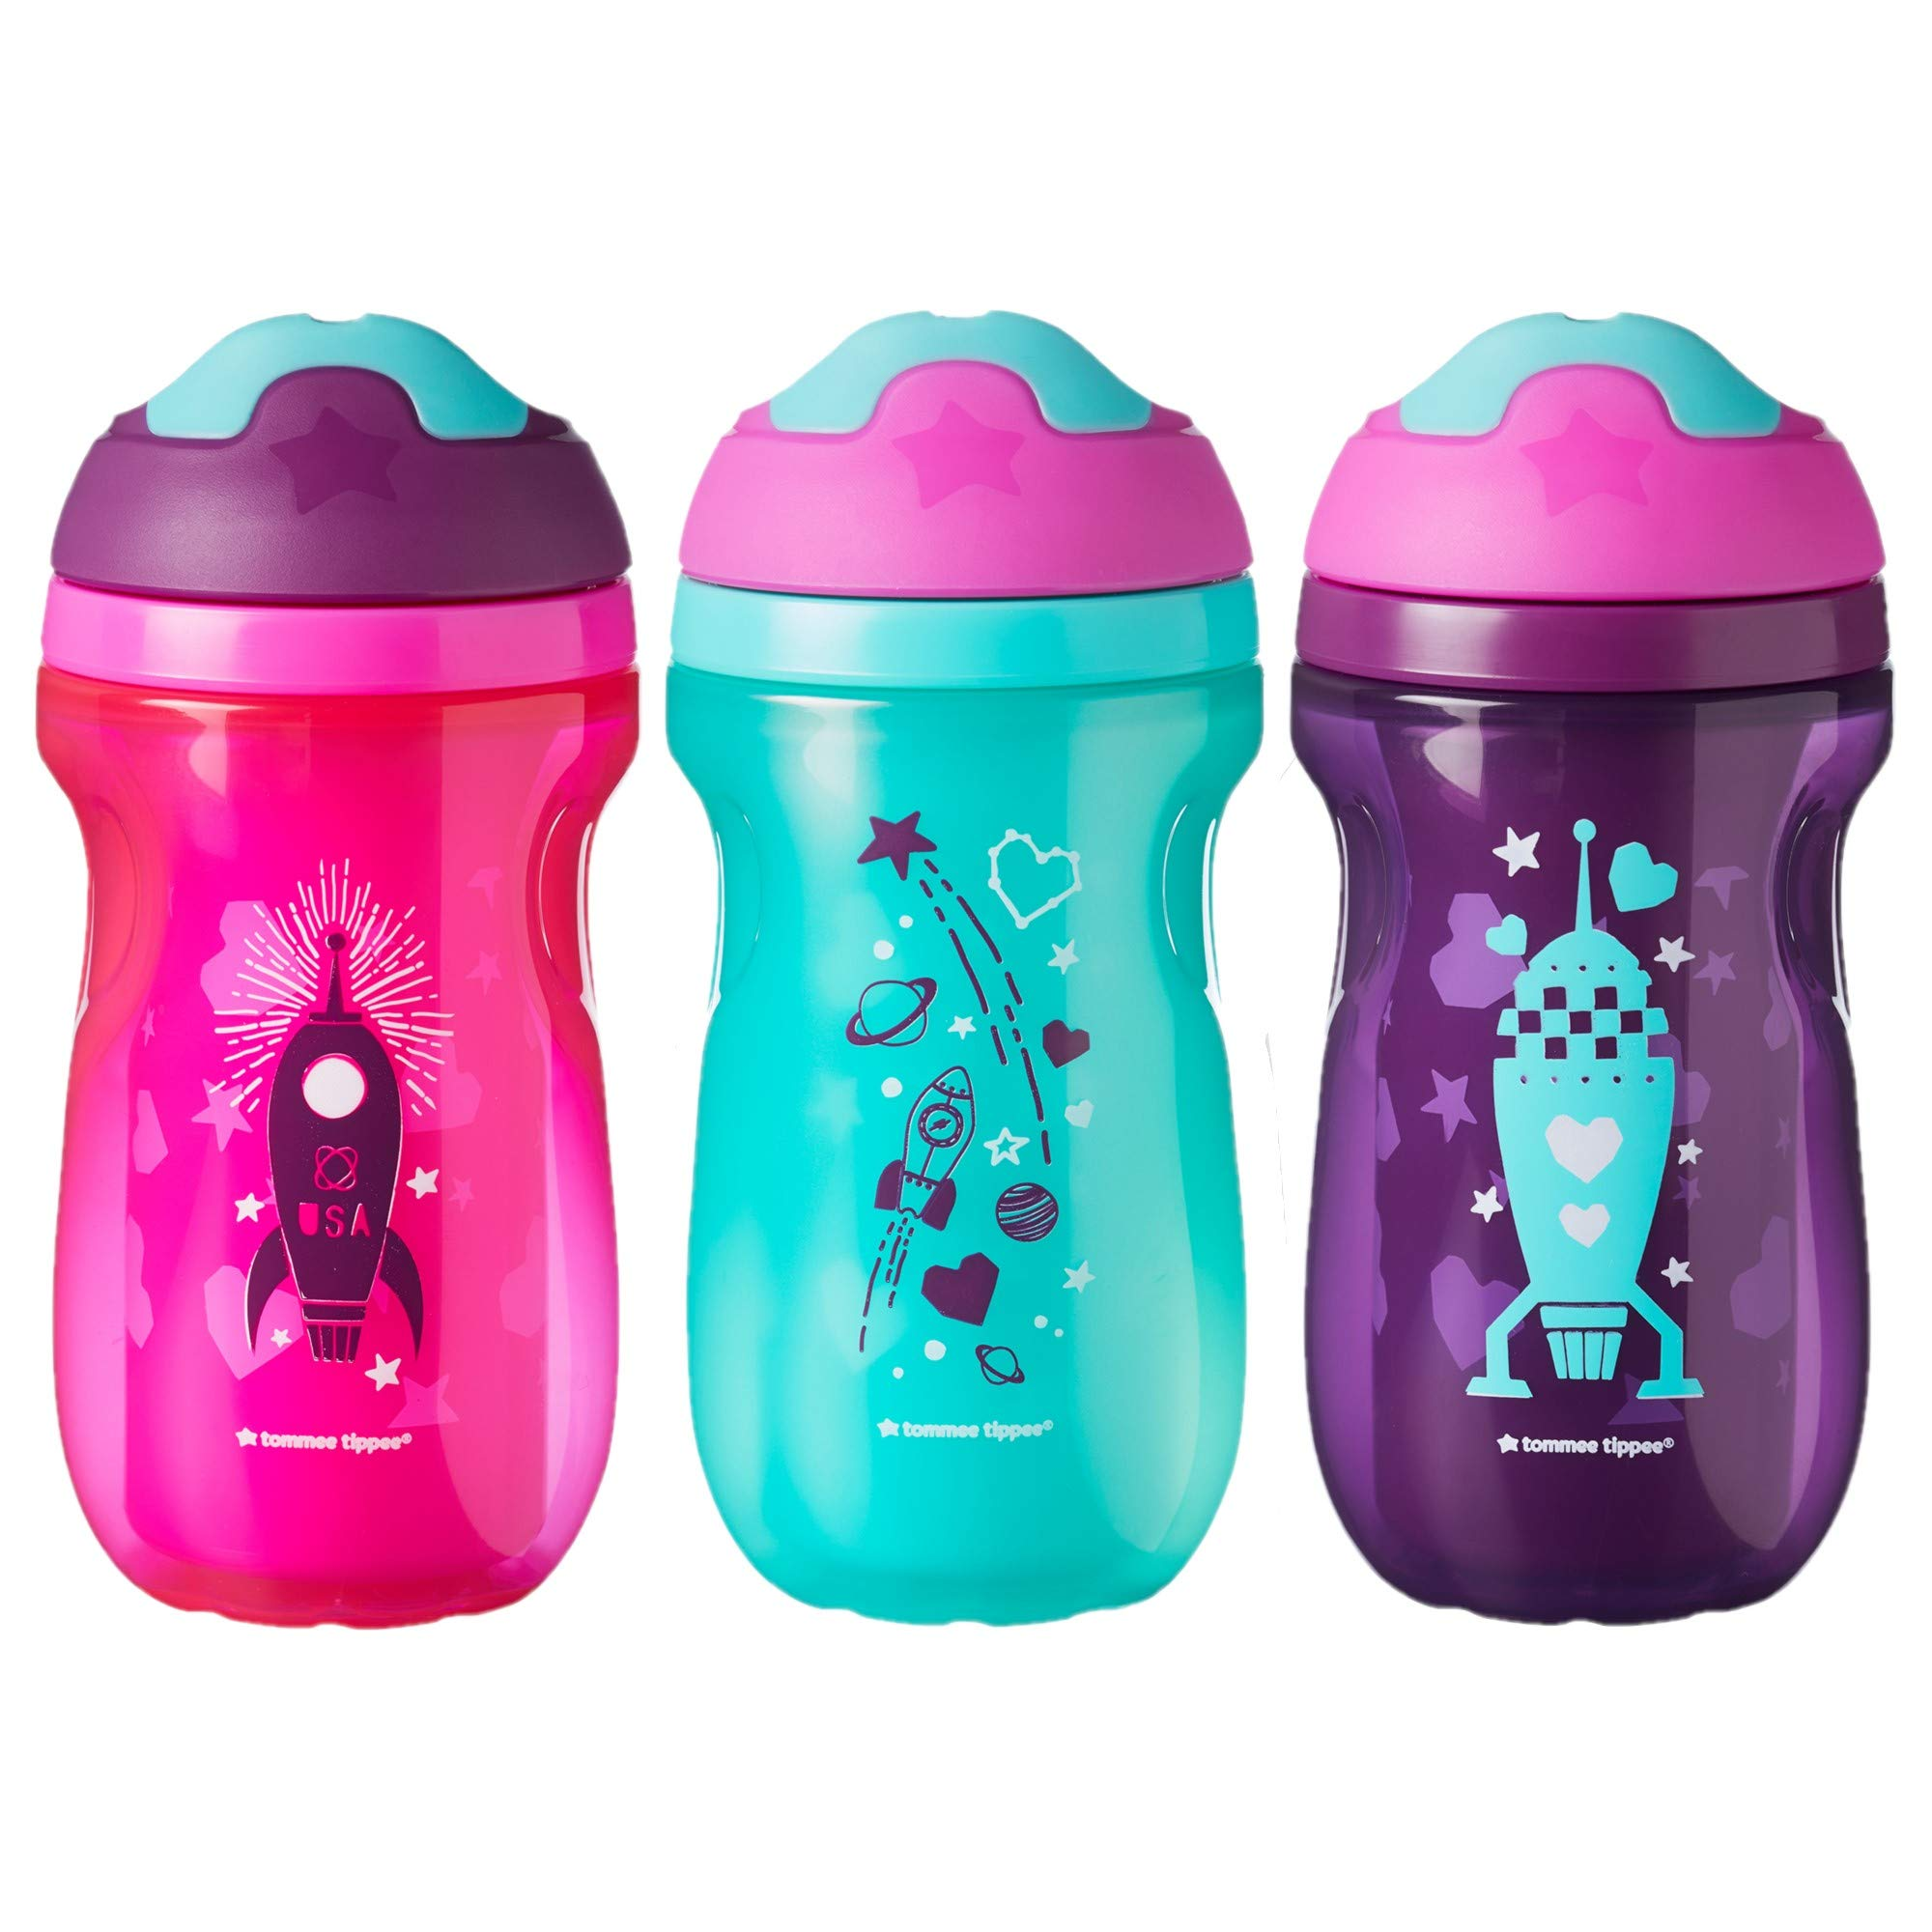 Tommee Tippee Non-Spill Insulated Sippee Toddler Tumbler Cup, 12+ Months, 9 Ounce, 3 Count, Girl, Purple, Pink and Blue